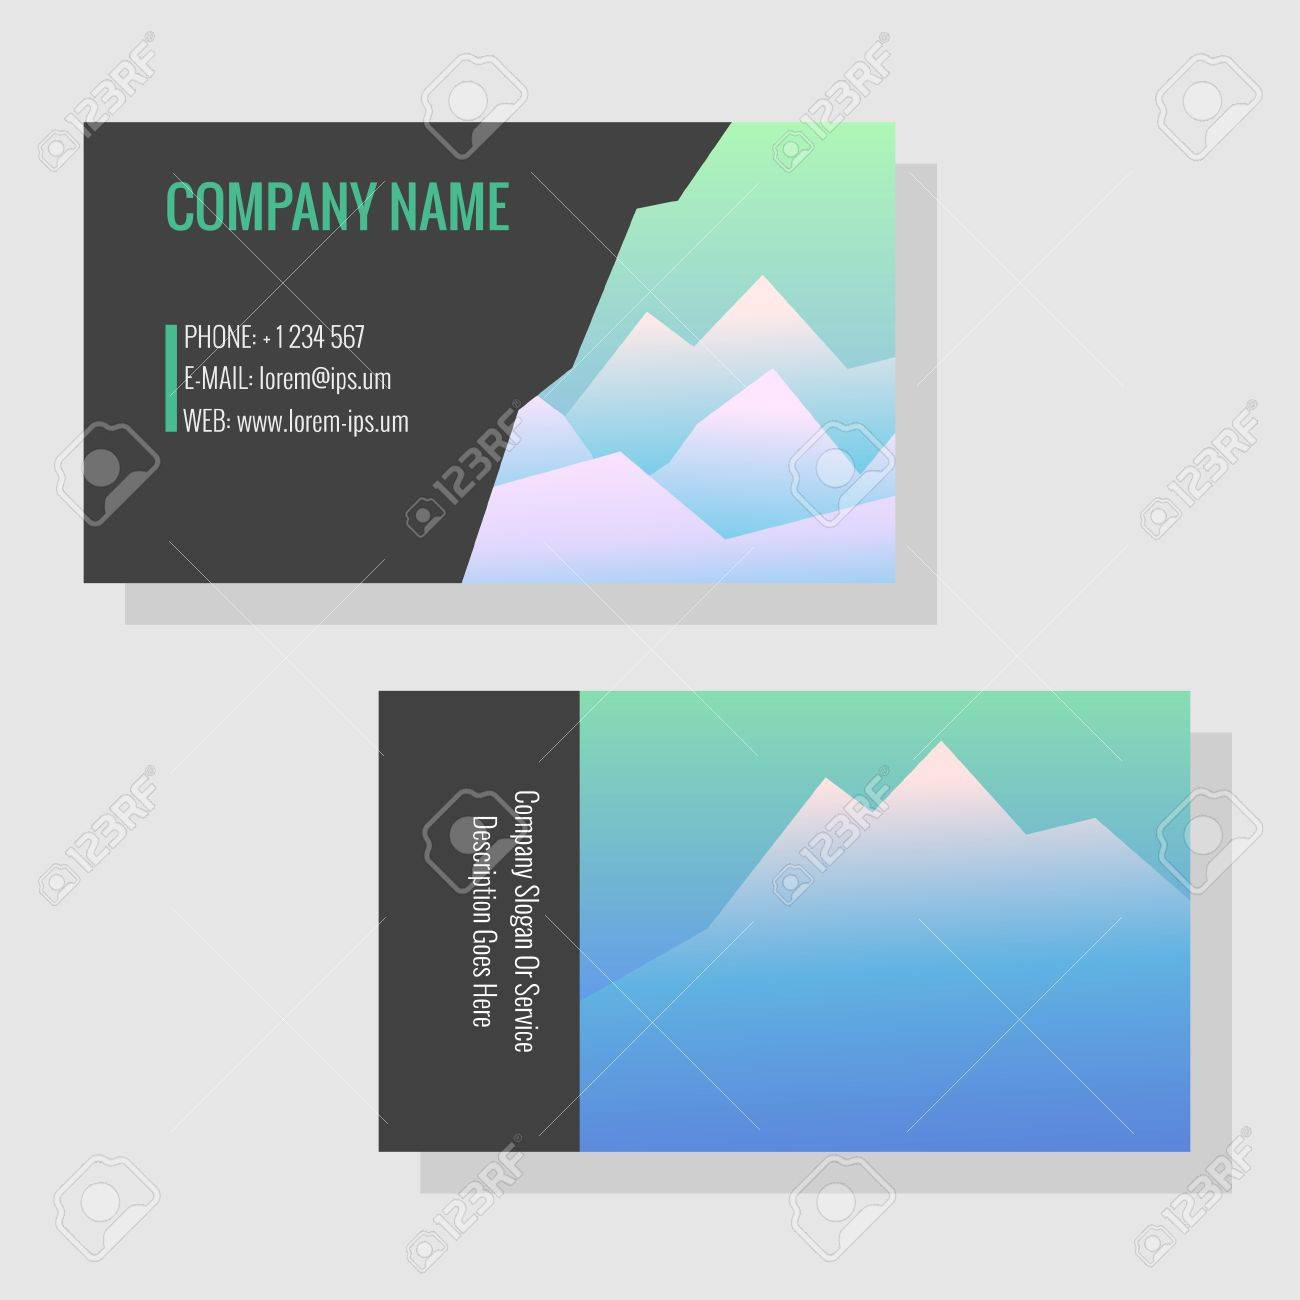 Best price for business cards choice image free business cards best color for business cards images free business cards card stock for business cards gallery free magicingreecefo Images